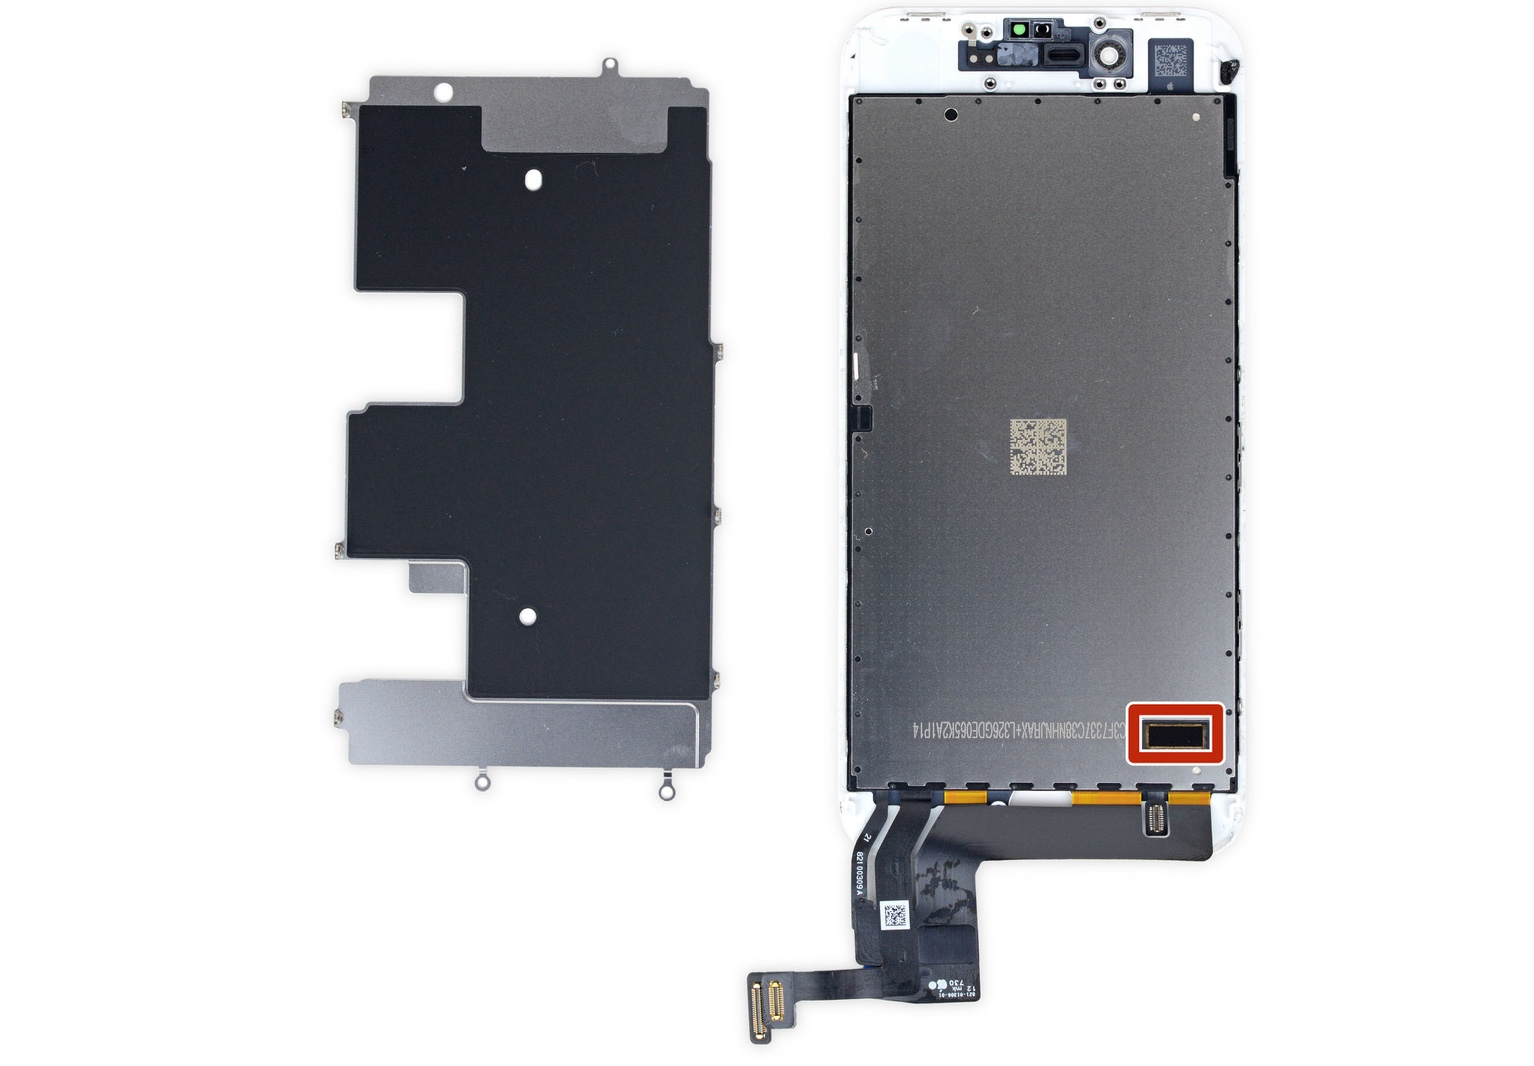 iPhone 8 scherm chip iFixit